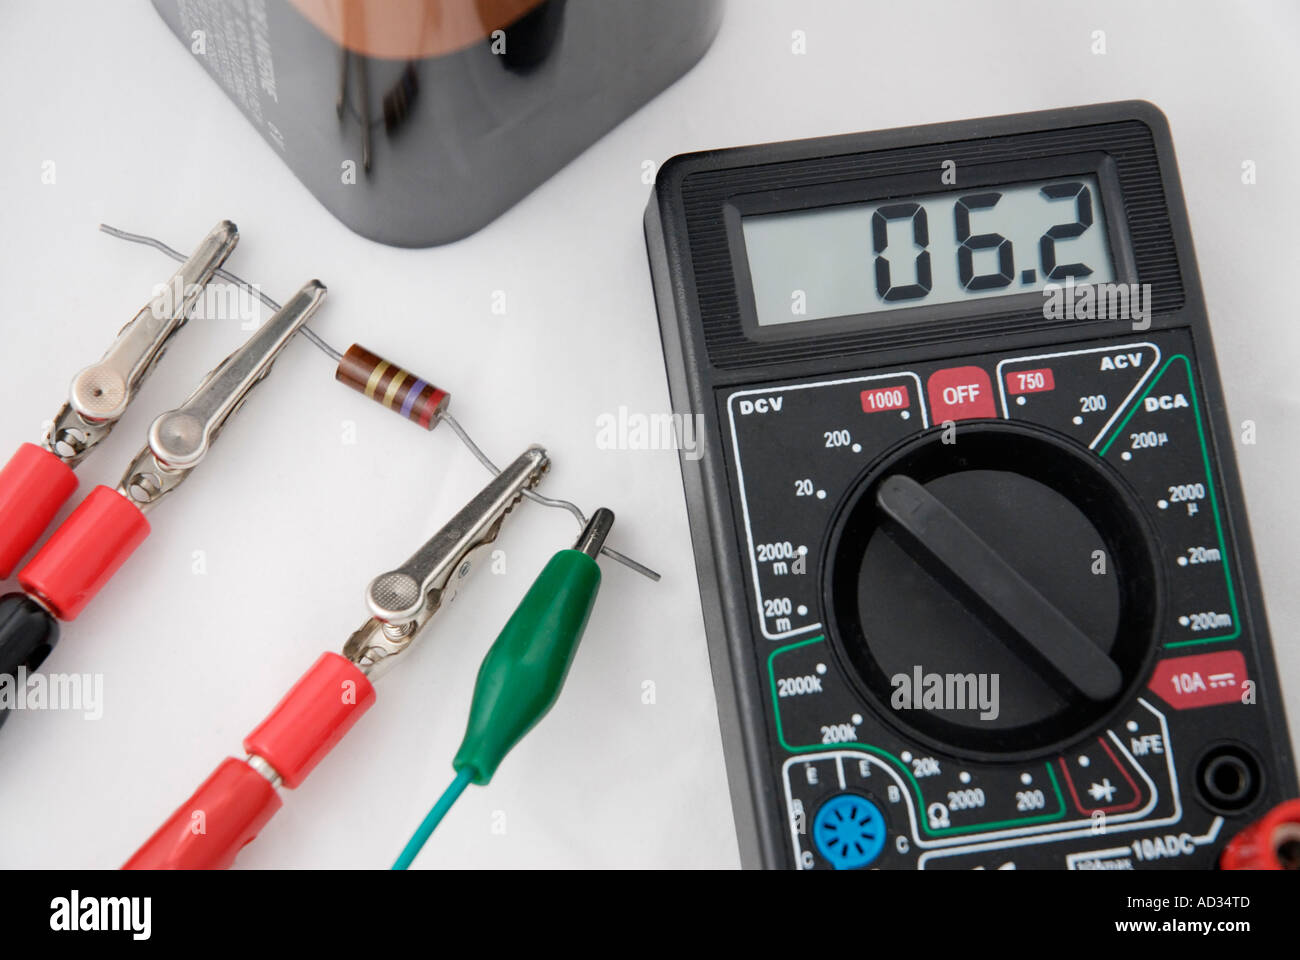 Digital multimeter connected to circuit including battery and resistor - Stock Image